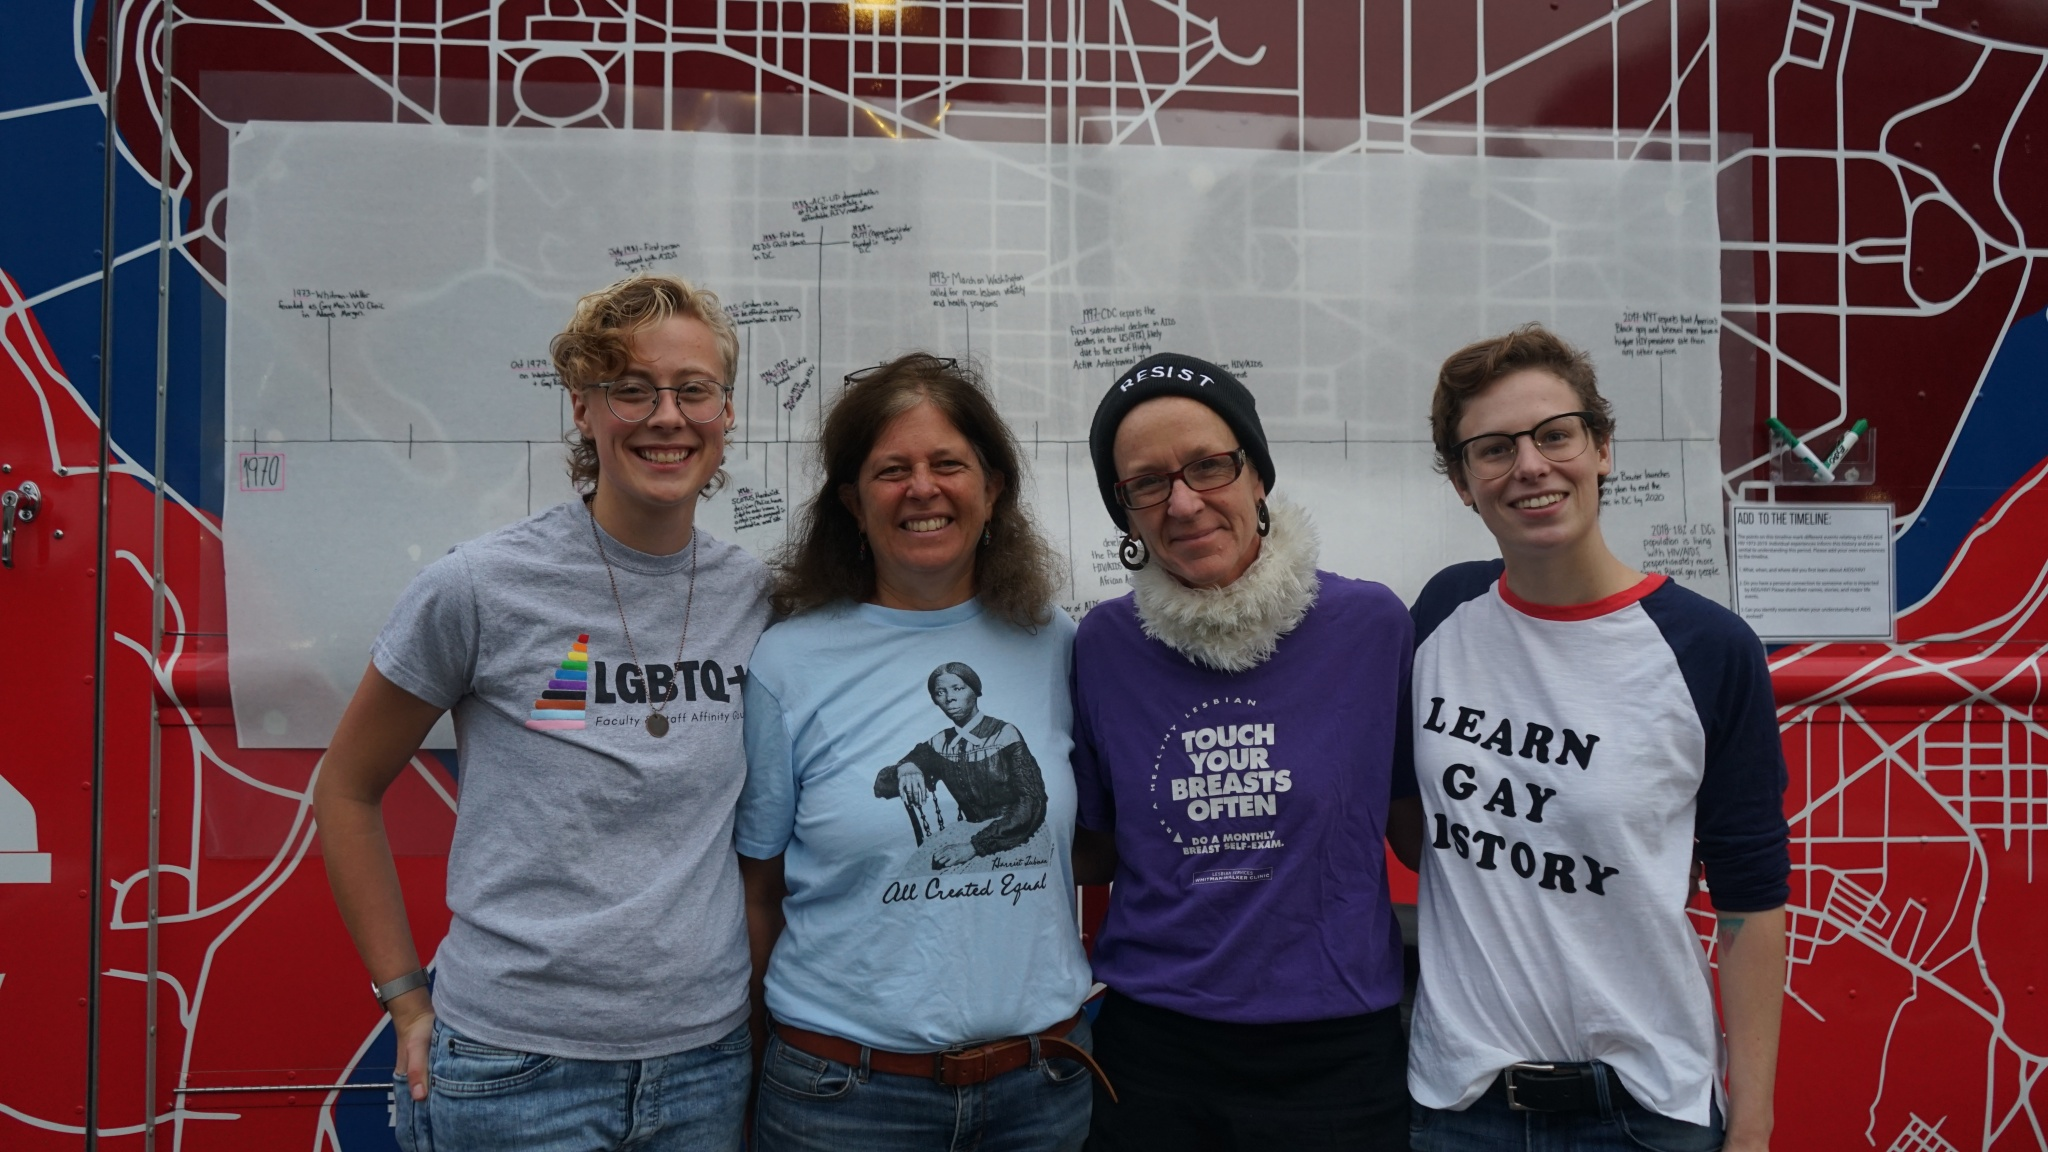 Photo of the team in front of timeline; from left to right: Kai W, Mary Ellen, Amelie, and Haley S.